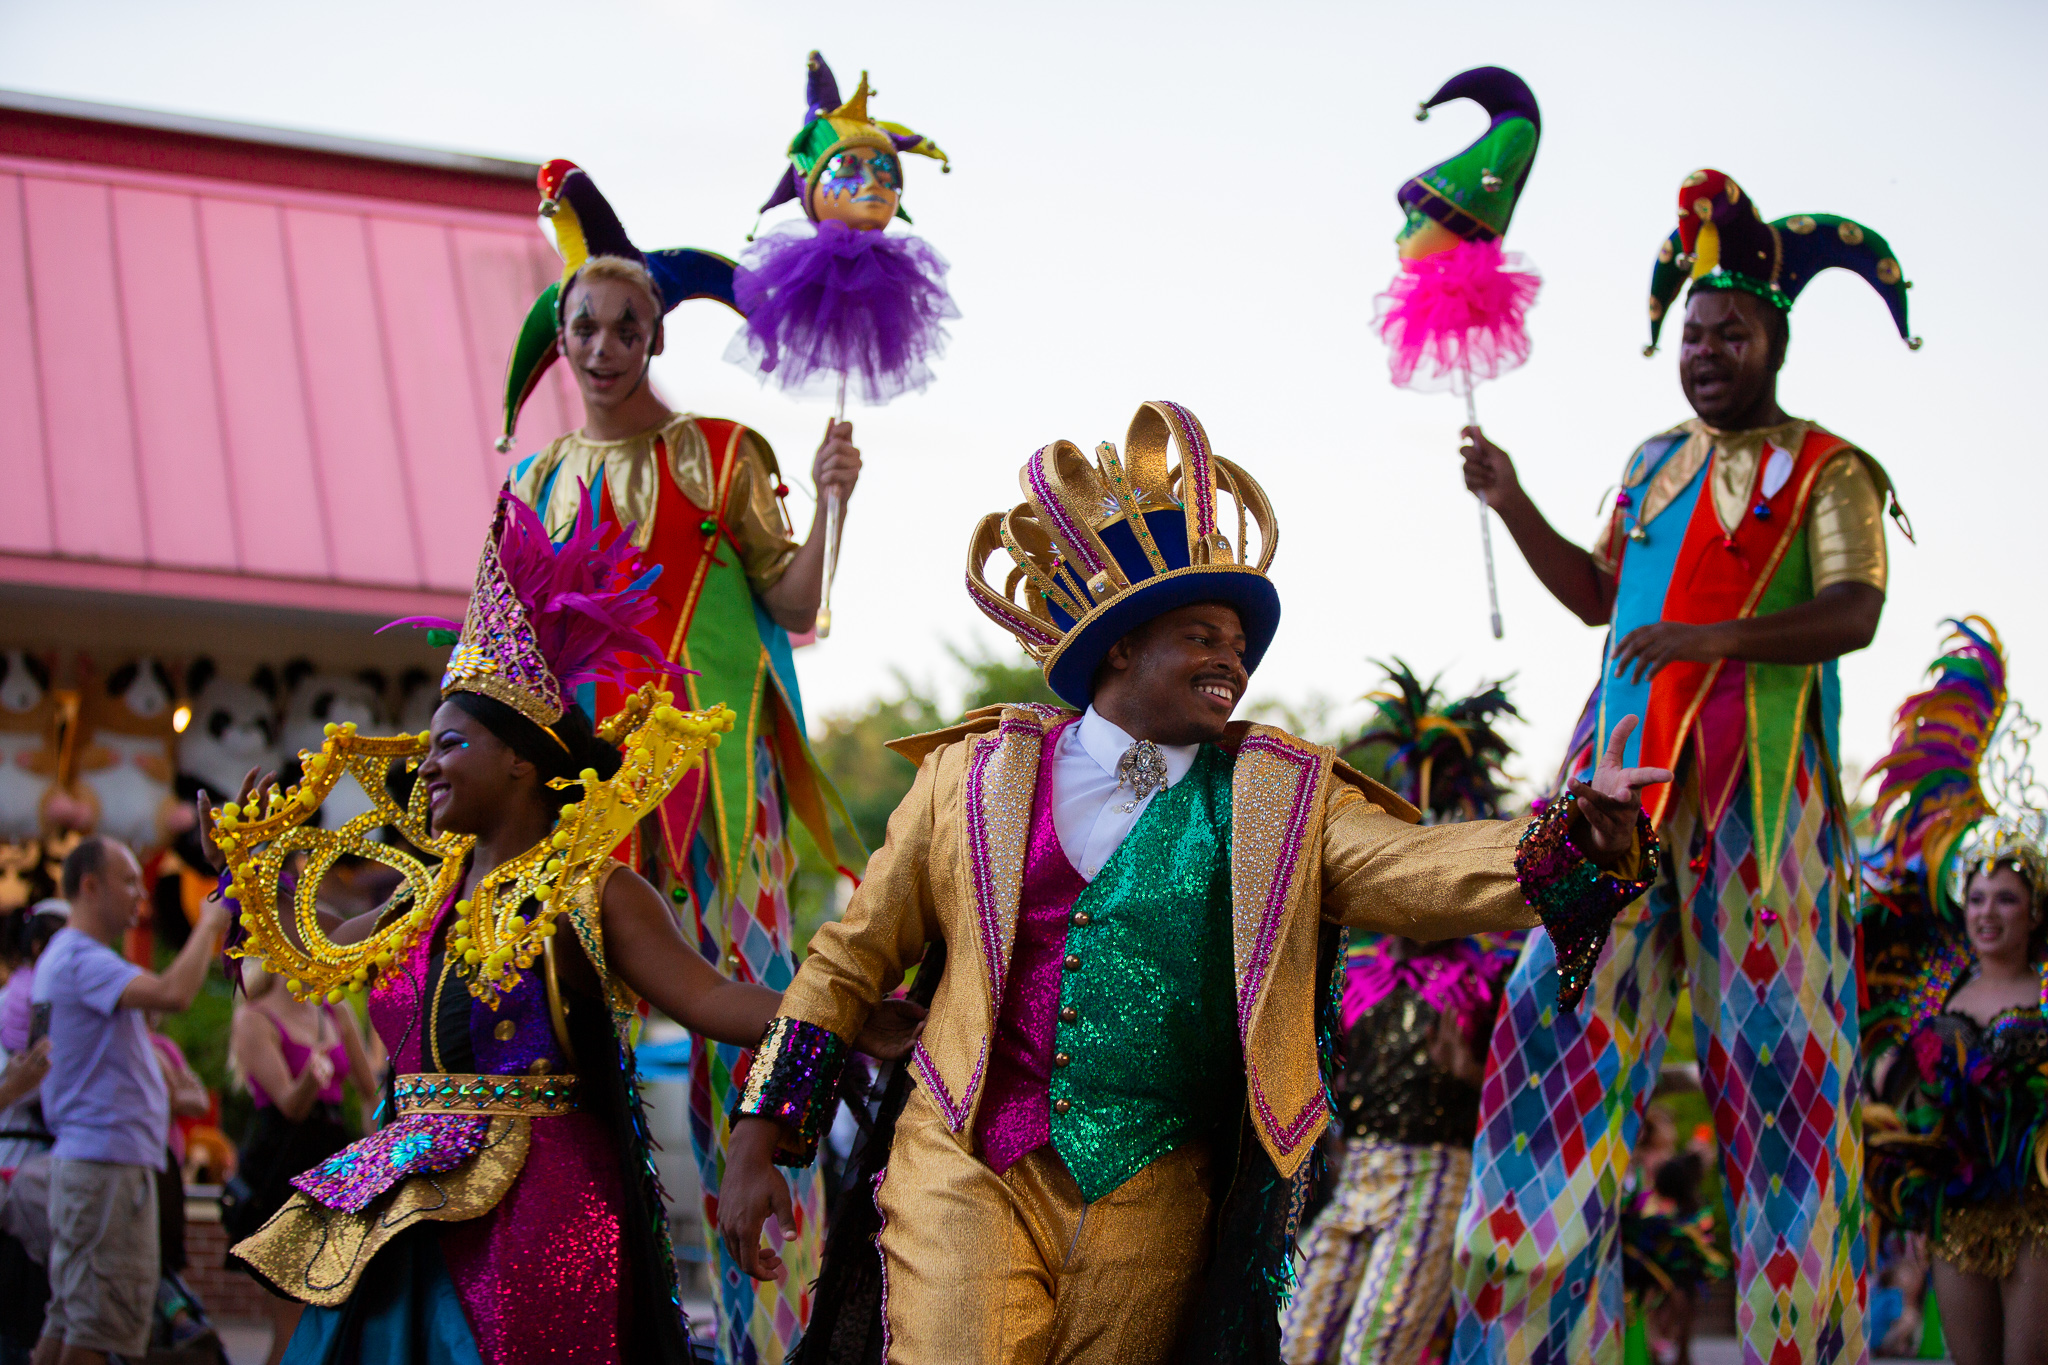 Grand Carnivale At Kings Dominion Is A Feast For The Senses – And A Great Family Value!